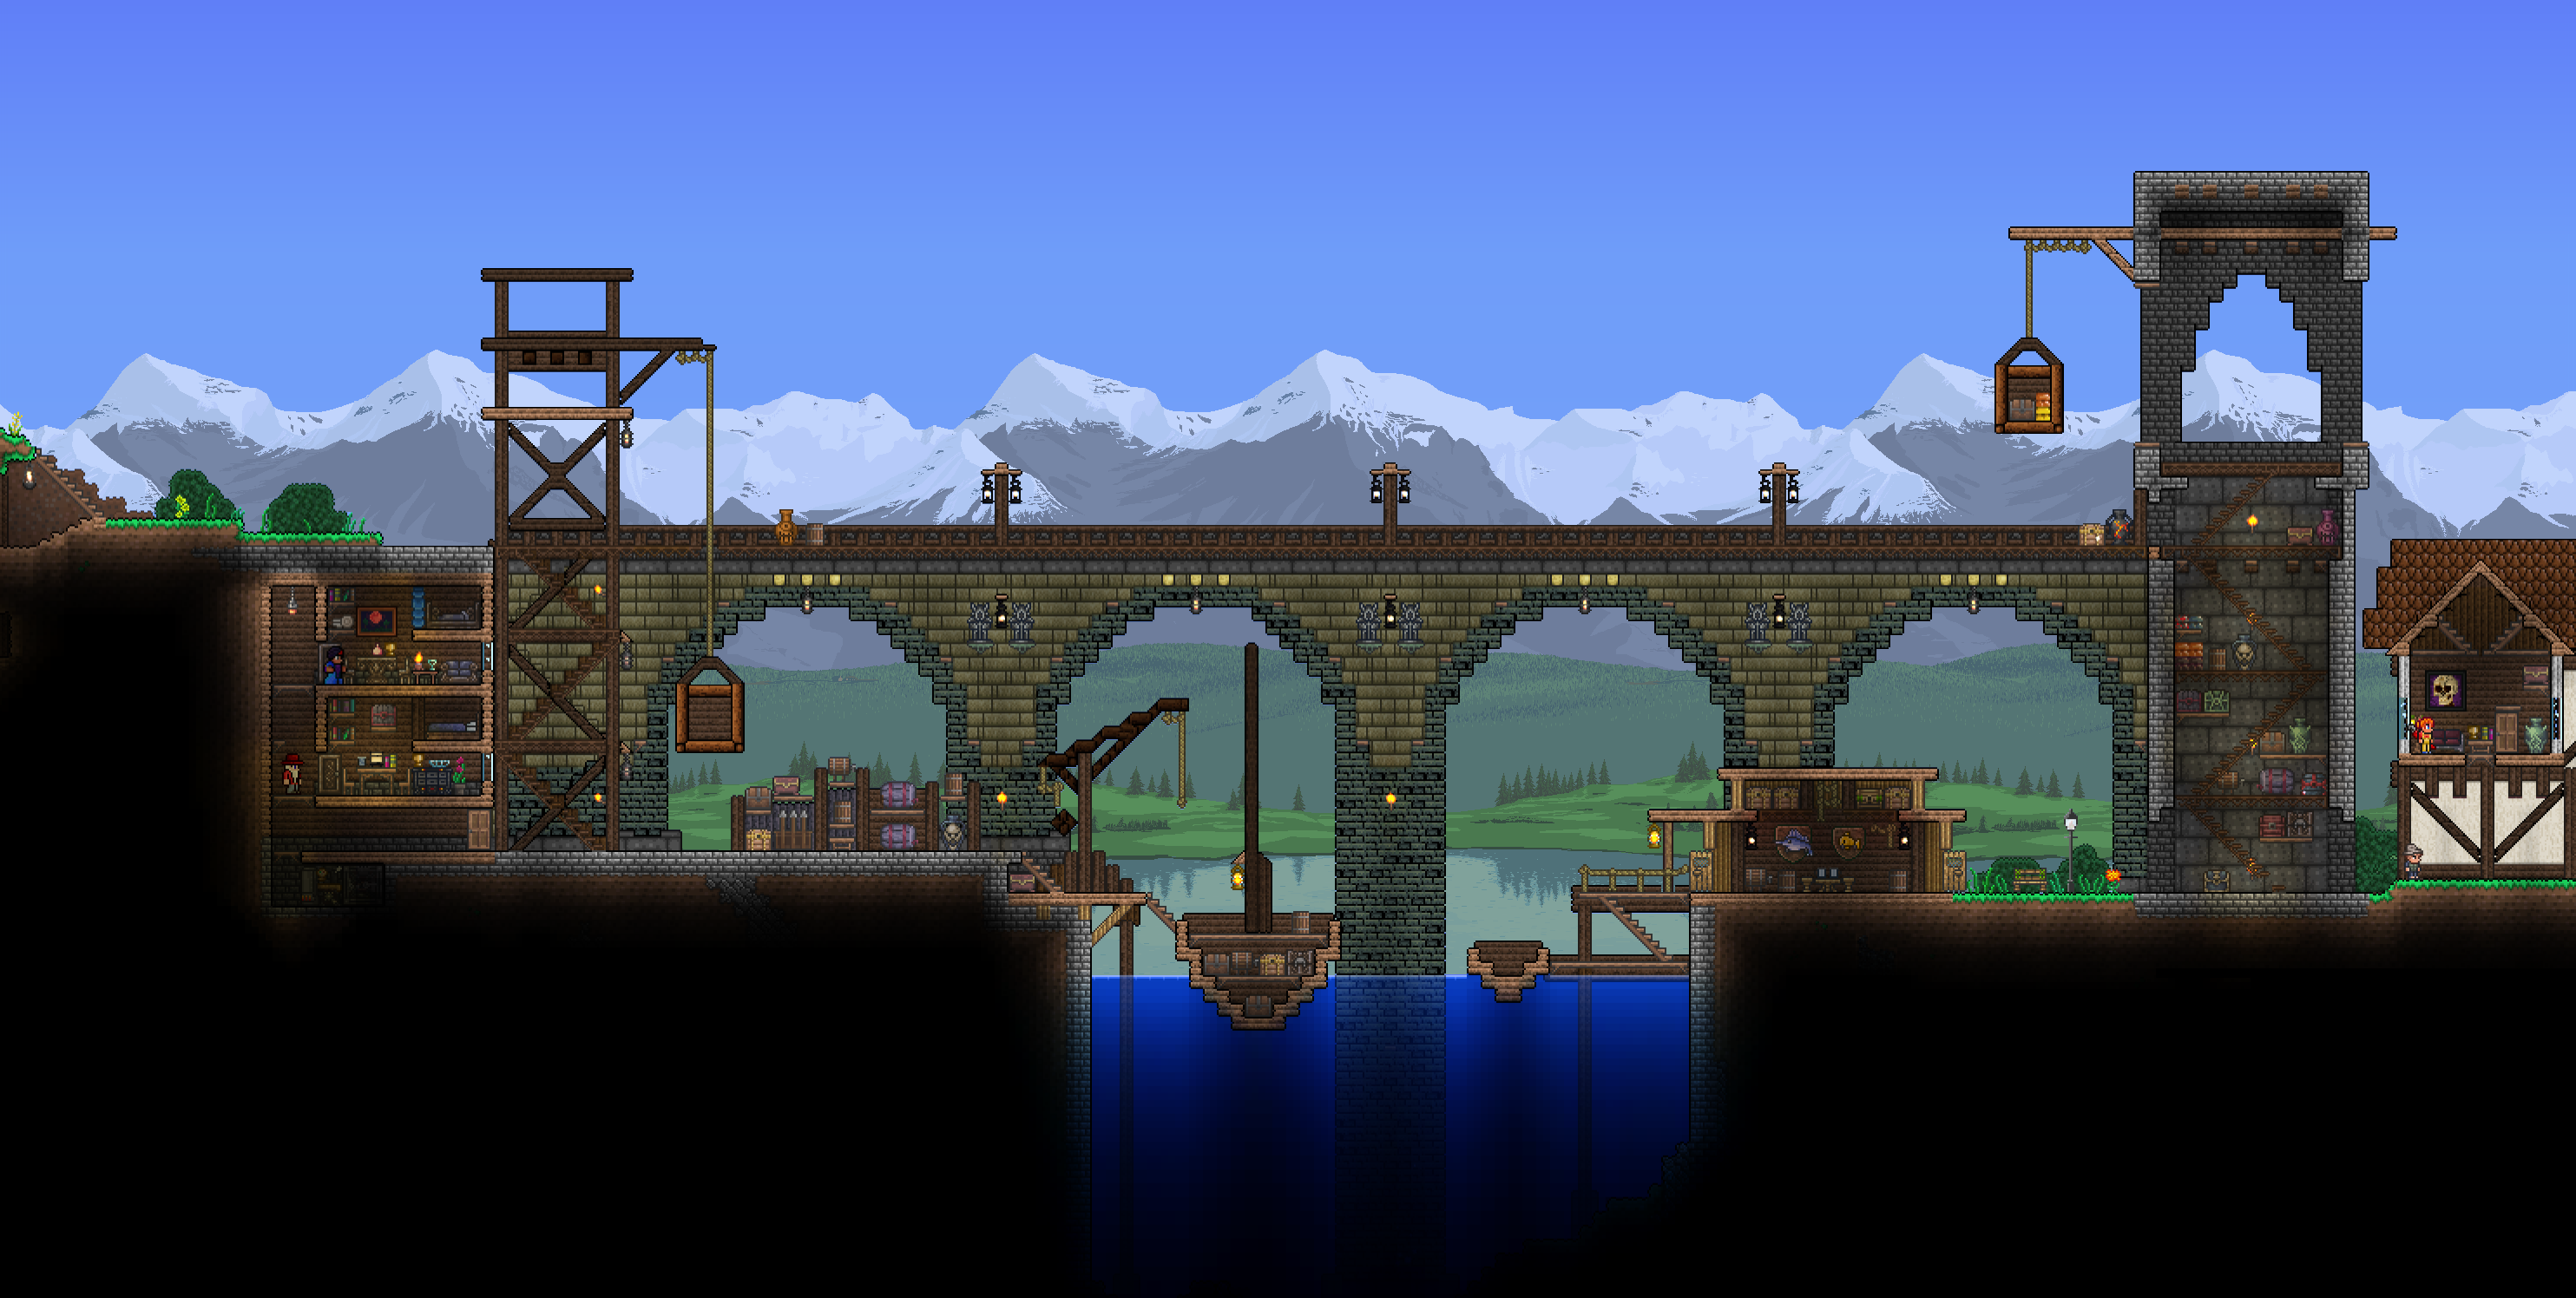 Stone Block Wall Terraria : Can anyone tell me the wall blocks used for this bridge s media